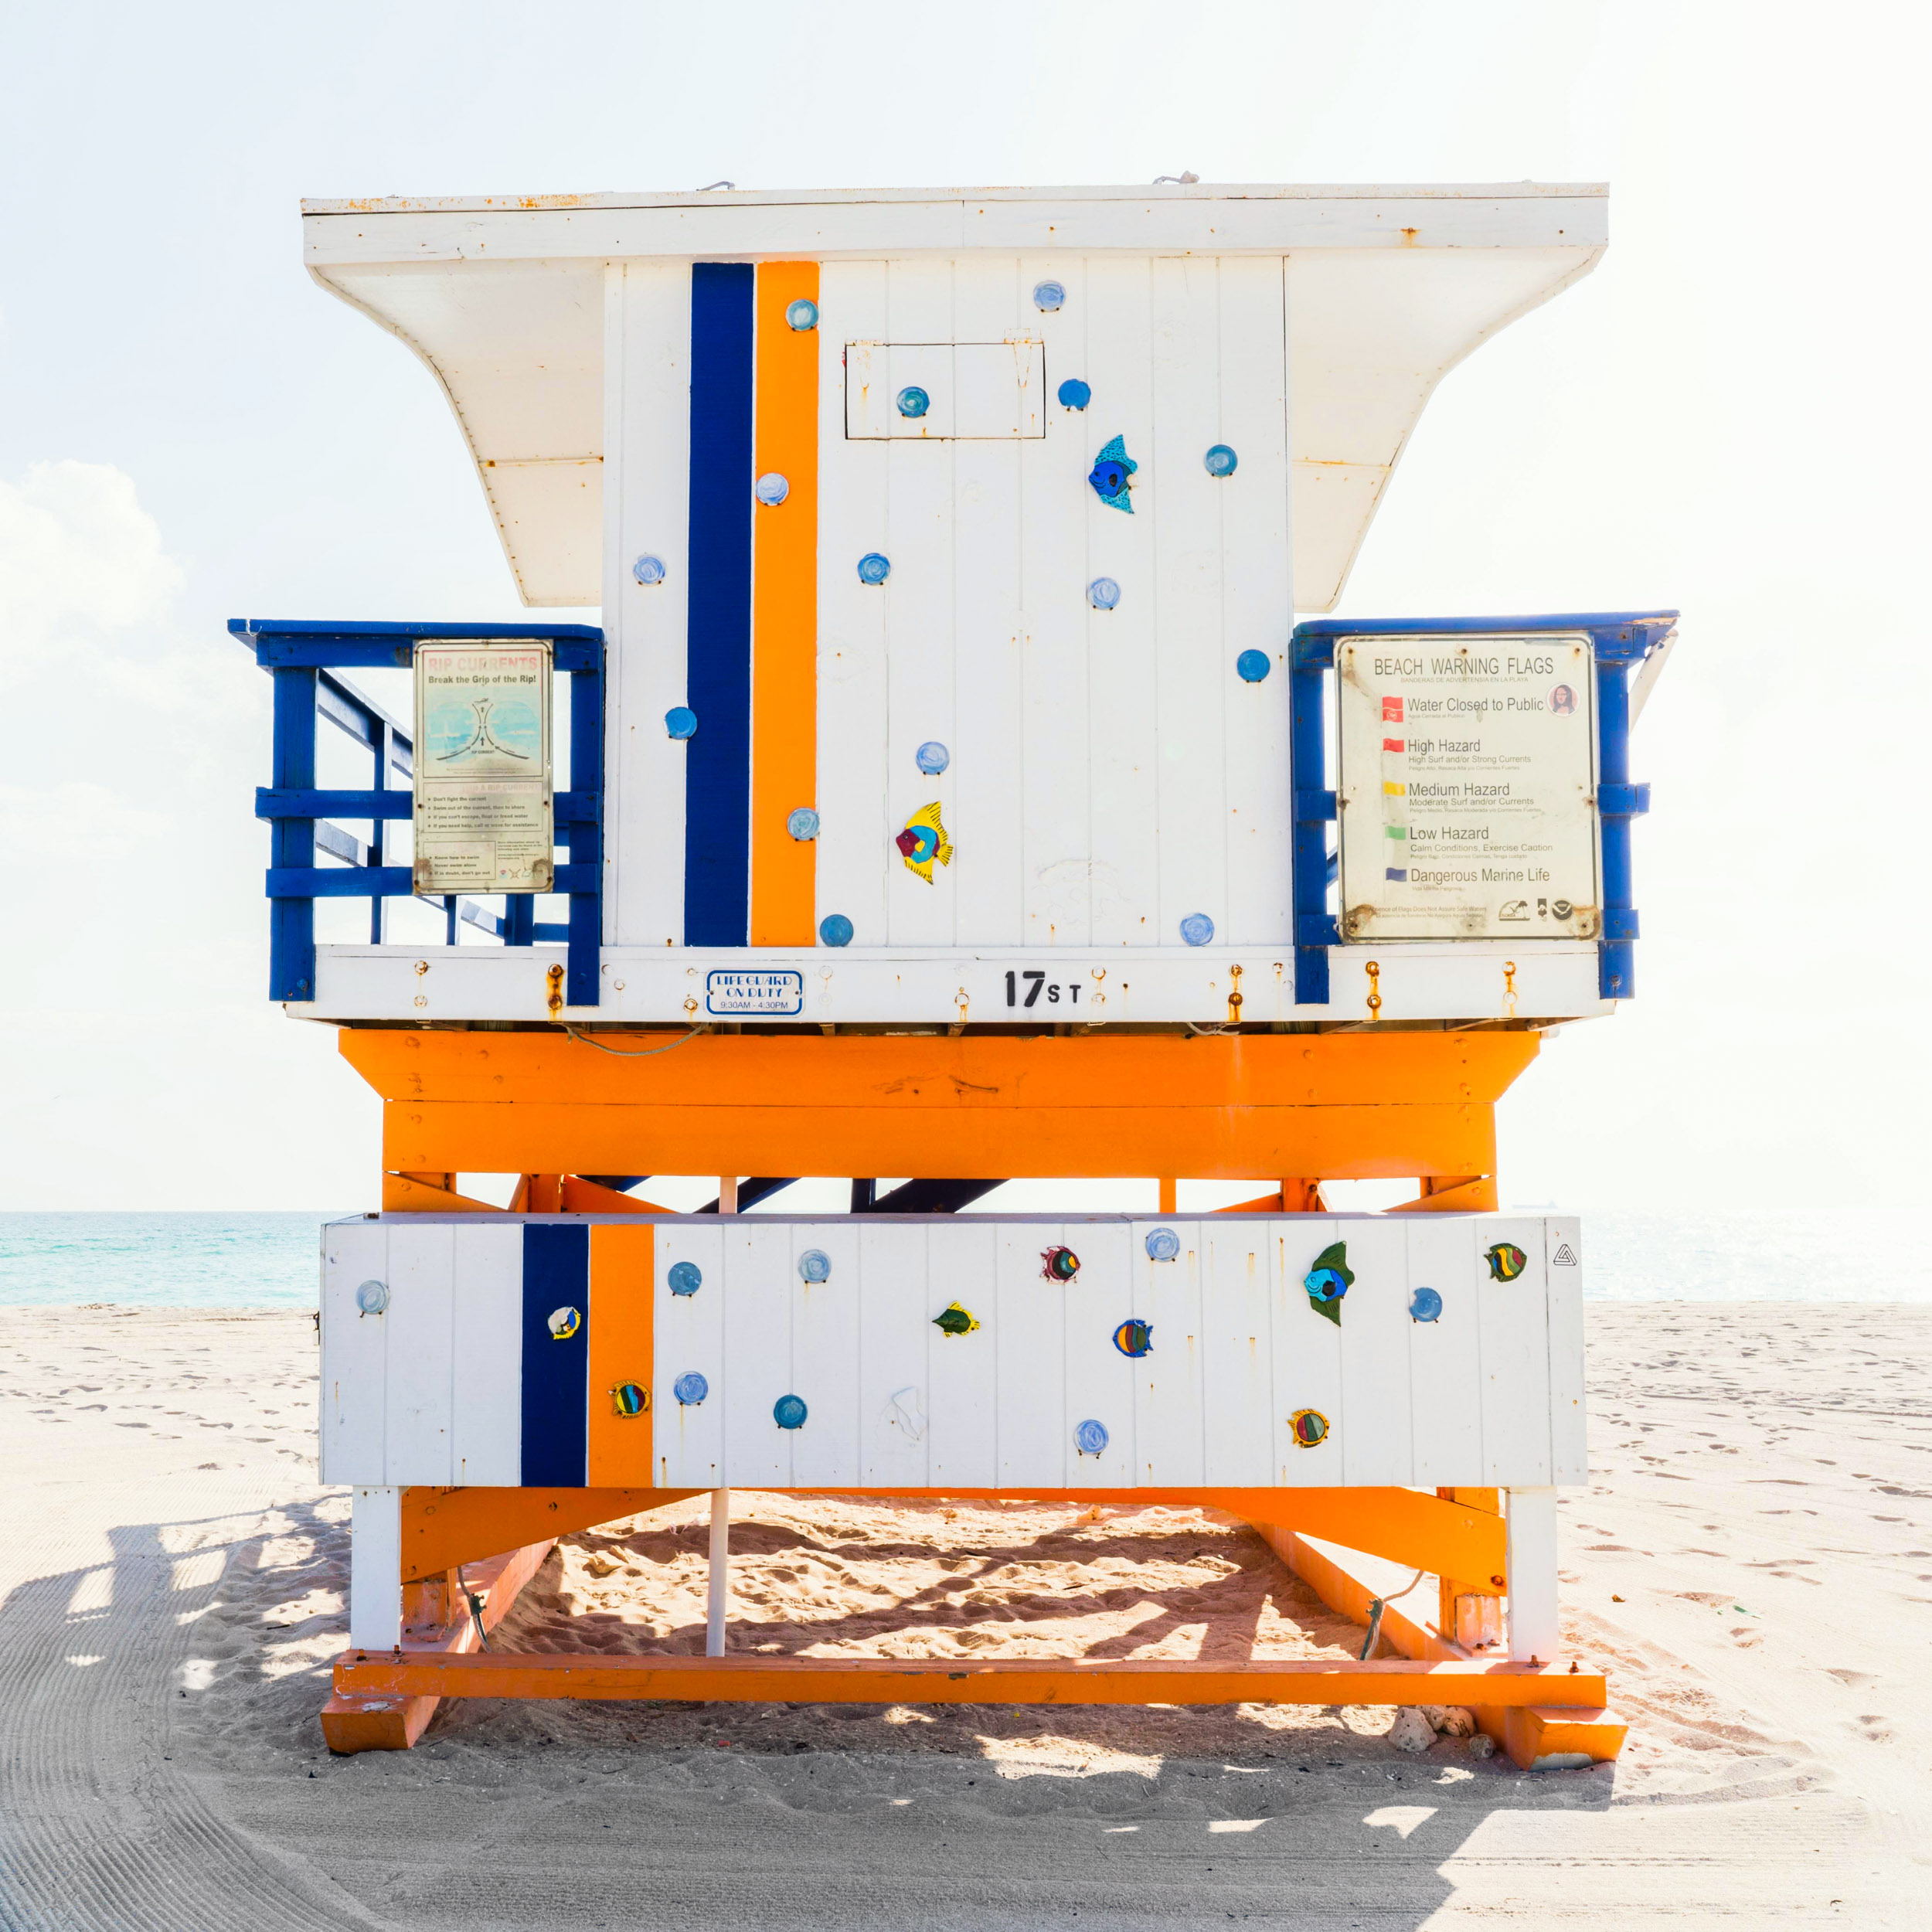 17th St. Miami Lifeguard Stand - Rear View